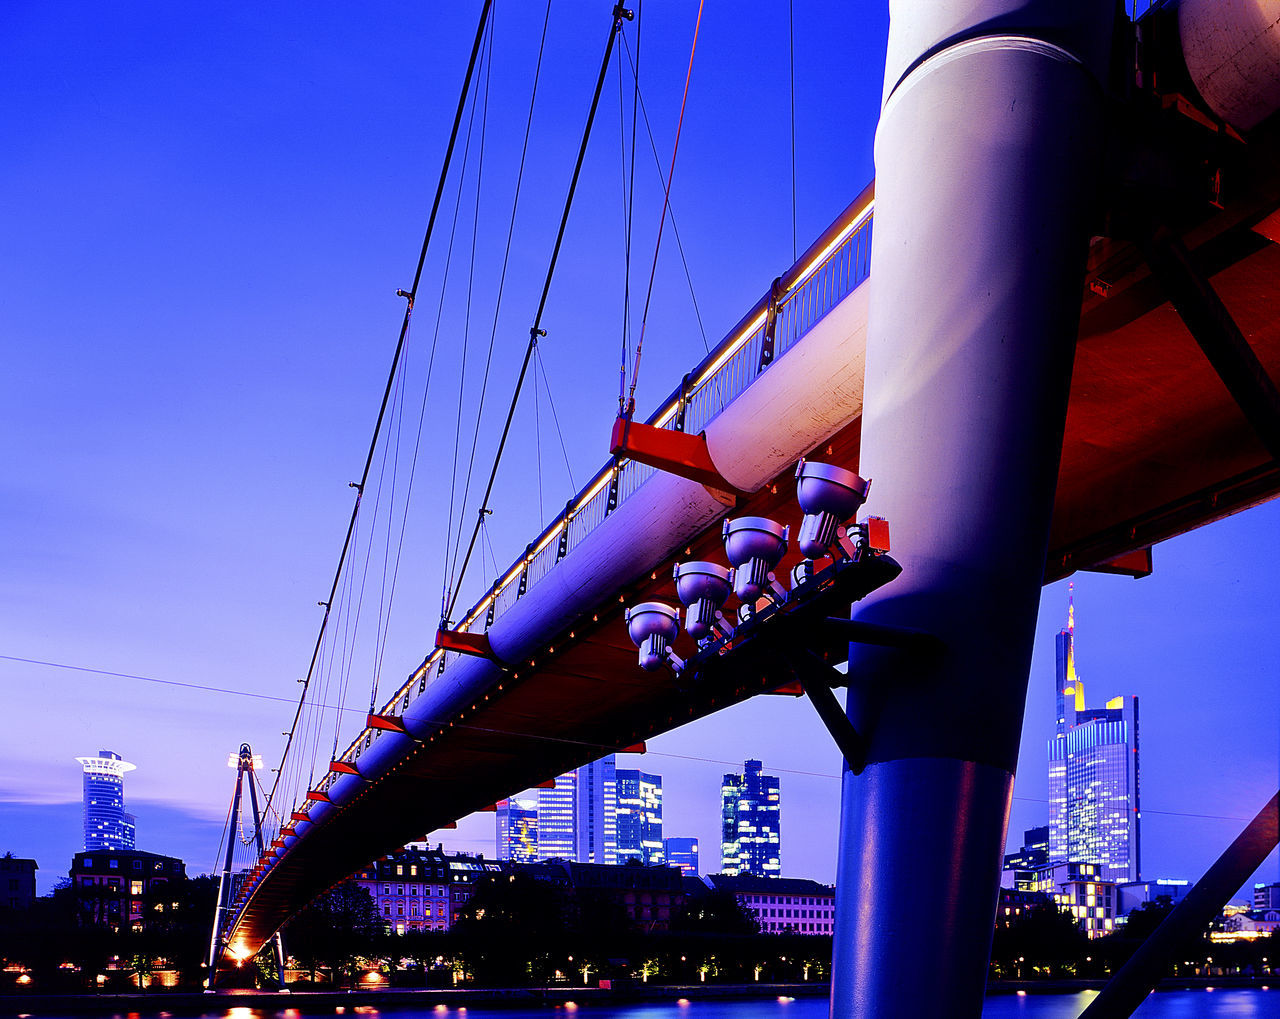 Architectual Lighting Architecture Bridge - Man Made Structure Evening Footbridge Frankfurt Am Main Holbeinstegbrücke Low Angle View Mainufer Frankfurt Night Lights No People River Main Riverbank Skyline Frankfurt Urban Architecture